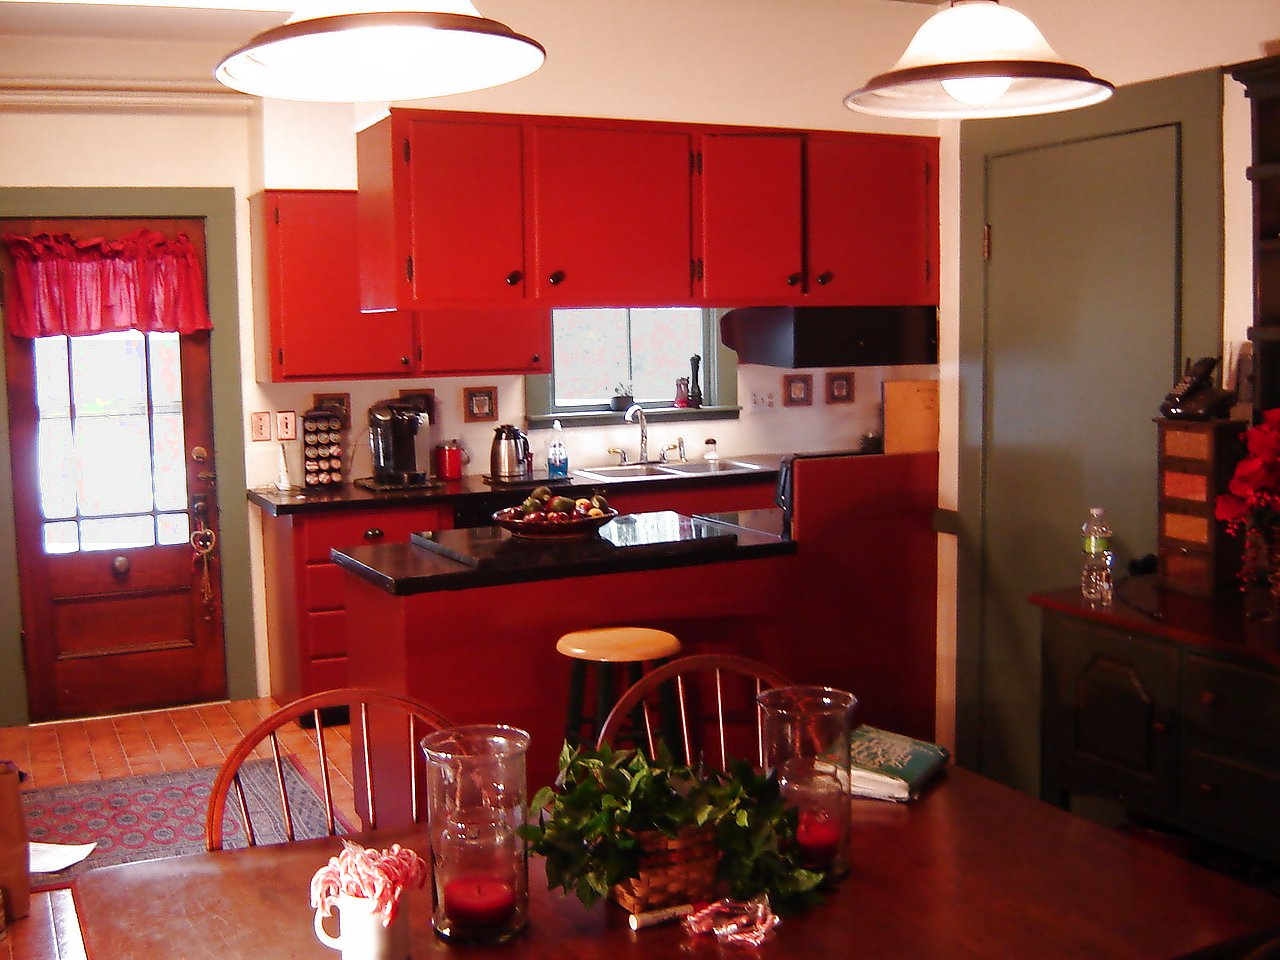 Black And Red Kitchen Designs red and black kitchen designs phenomenal and red kitchen 2 Adorable Red Country Kitchen Design With Storage And Red Dining Table With Wooden Chairs And Pendants